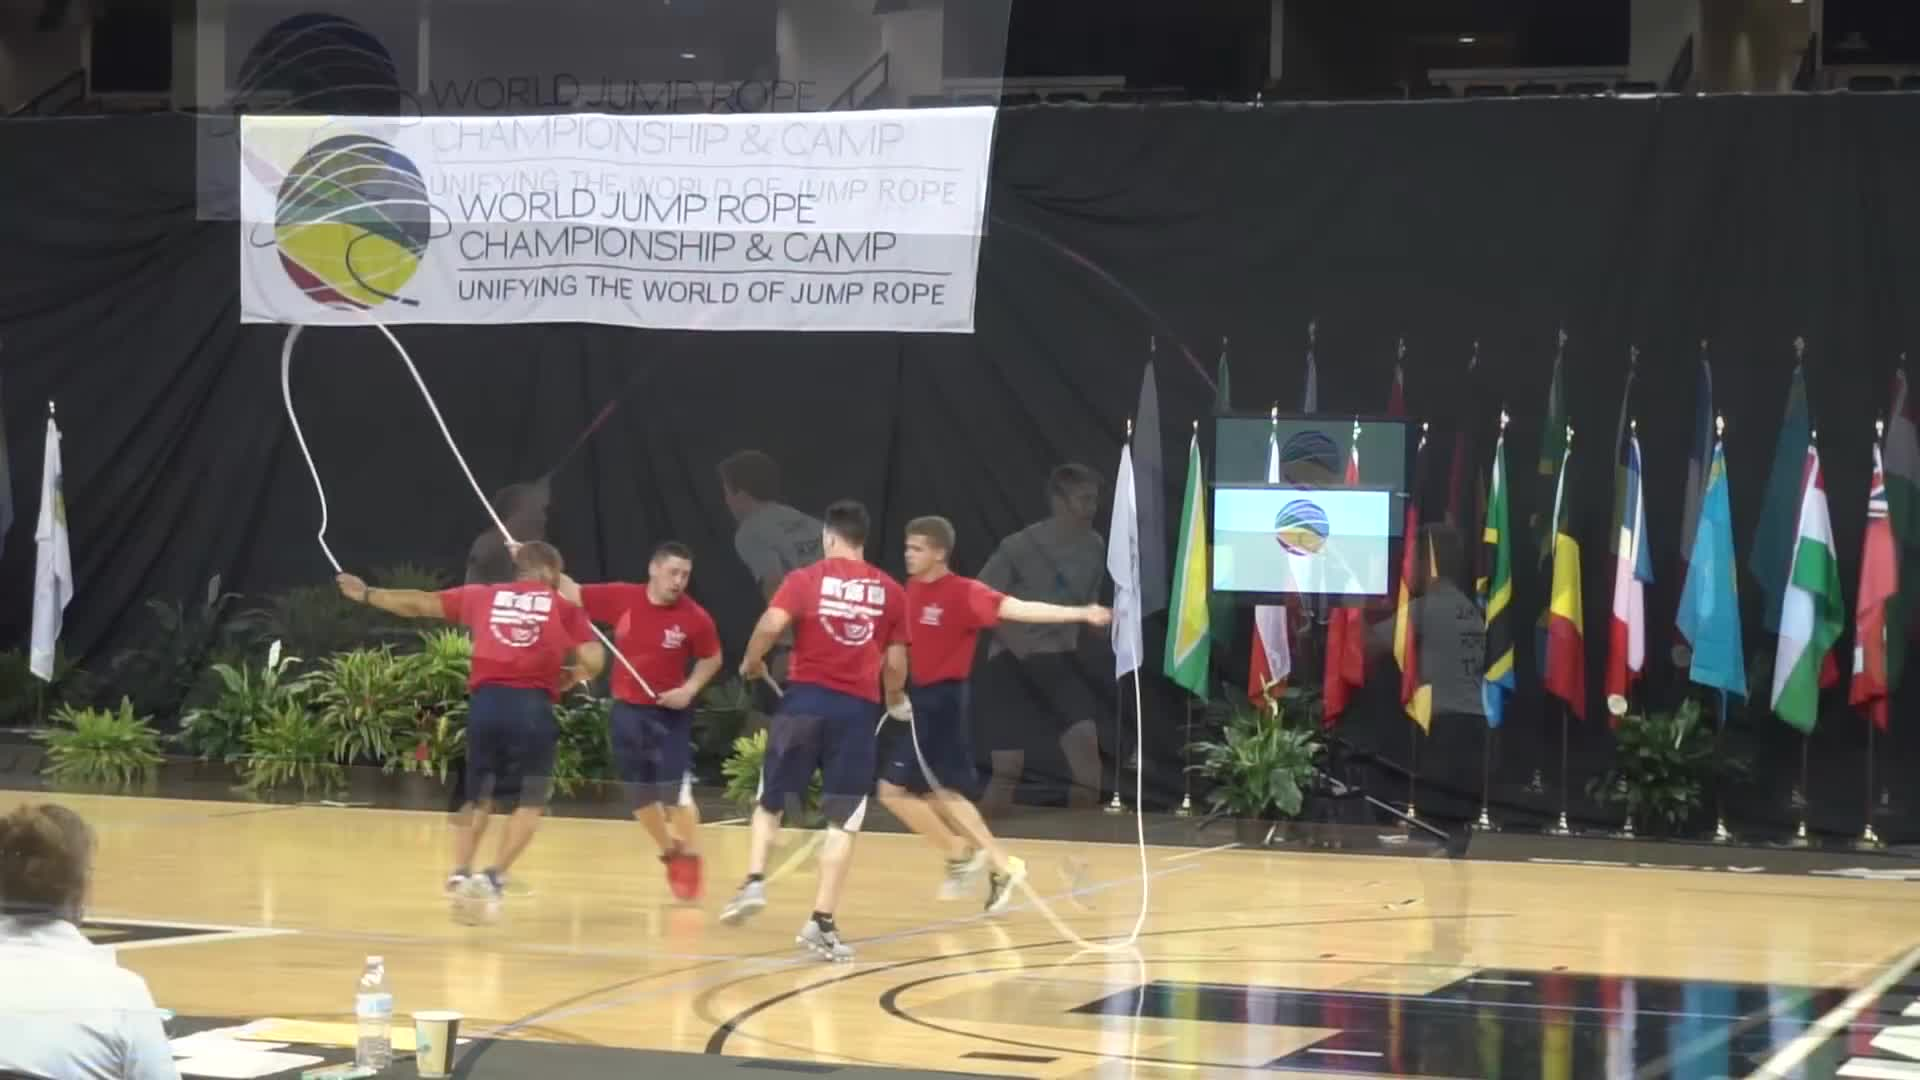 DDC, Film & Animation, WeJumpRope Music Videos, double dutch, fusion, wejumprope, wjr 2018, world jump rope, World Jump Rope 2018 - Day 4 - Double Dutch, DDC/Fusion, and Michael Phelps? GIFs